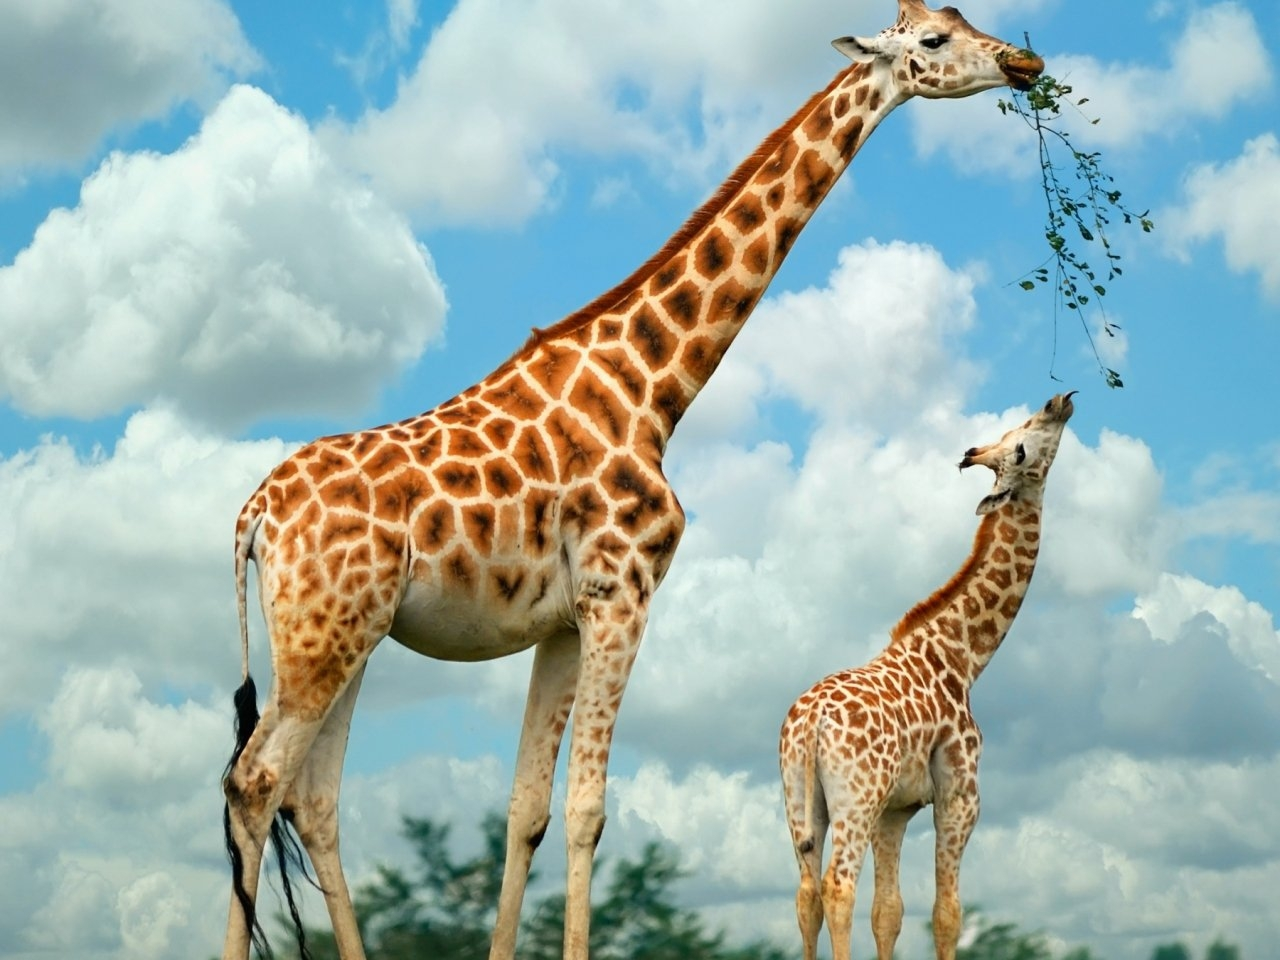 33778 download wallpaper Animals, Giraffes screensavers and pictures for free